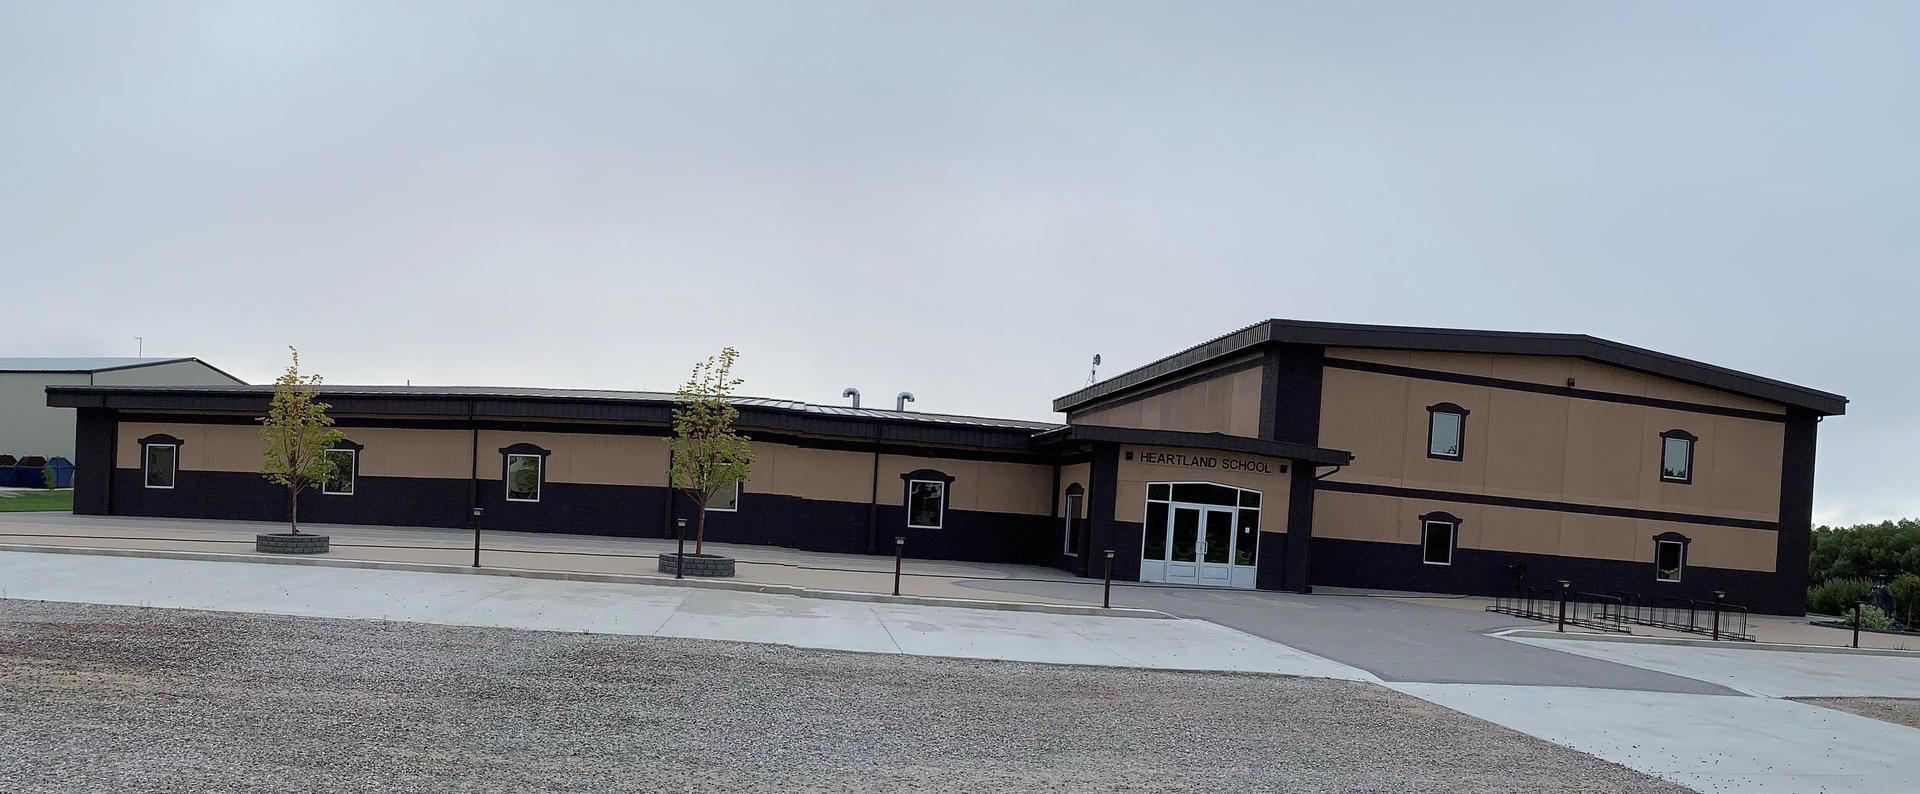 A picture of the exterior of Heartland School.  It is beige and brown with trees in front of the school.